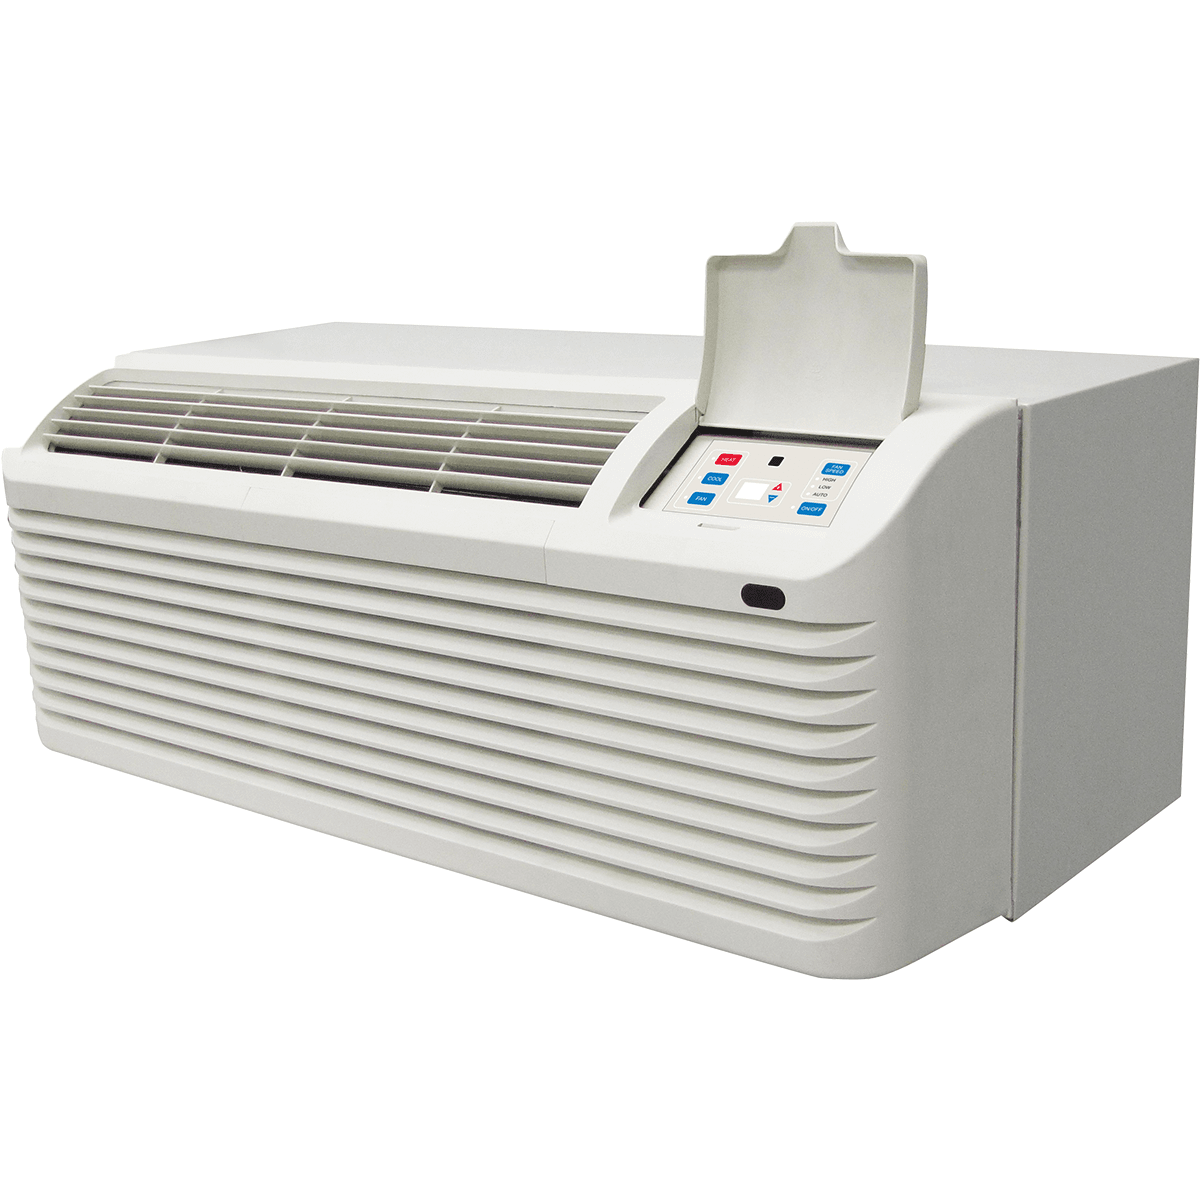 Comfort-aire 15,000 Btu Packaged Terminal Air Conditioner And Heater